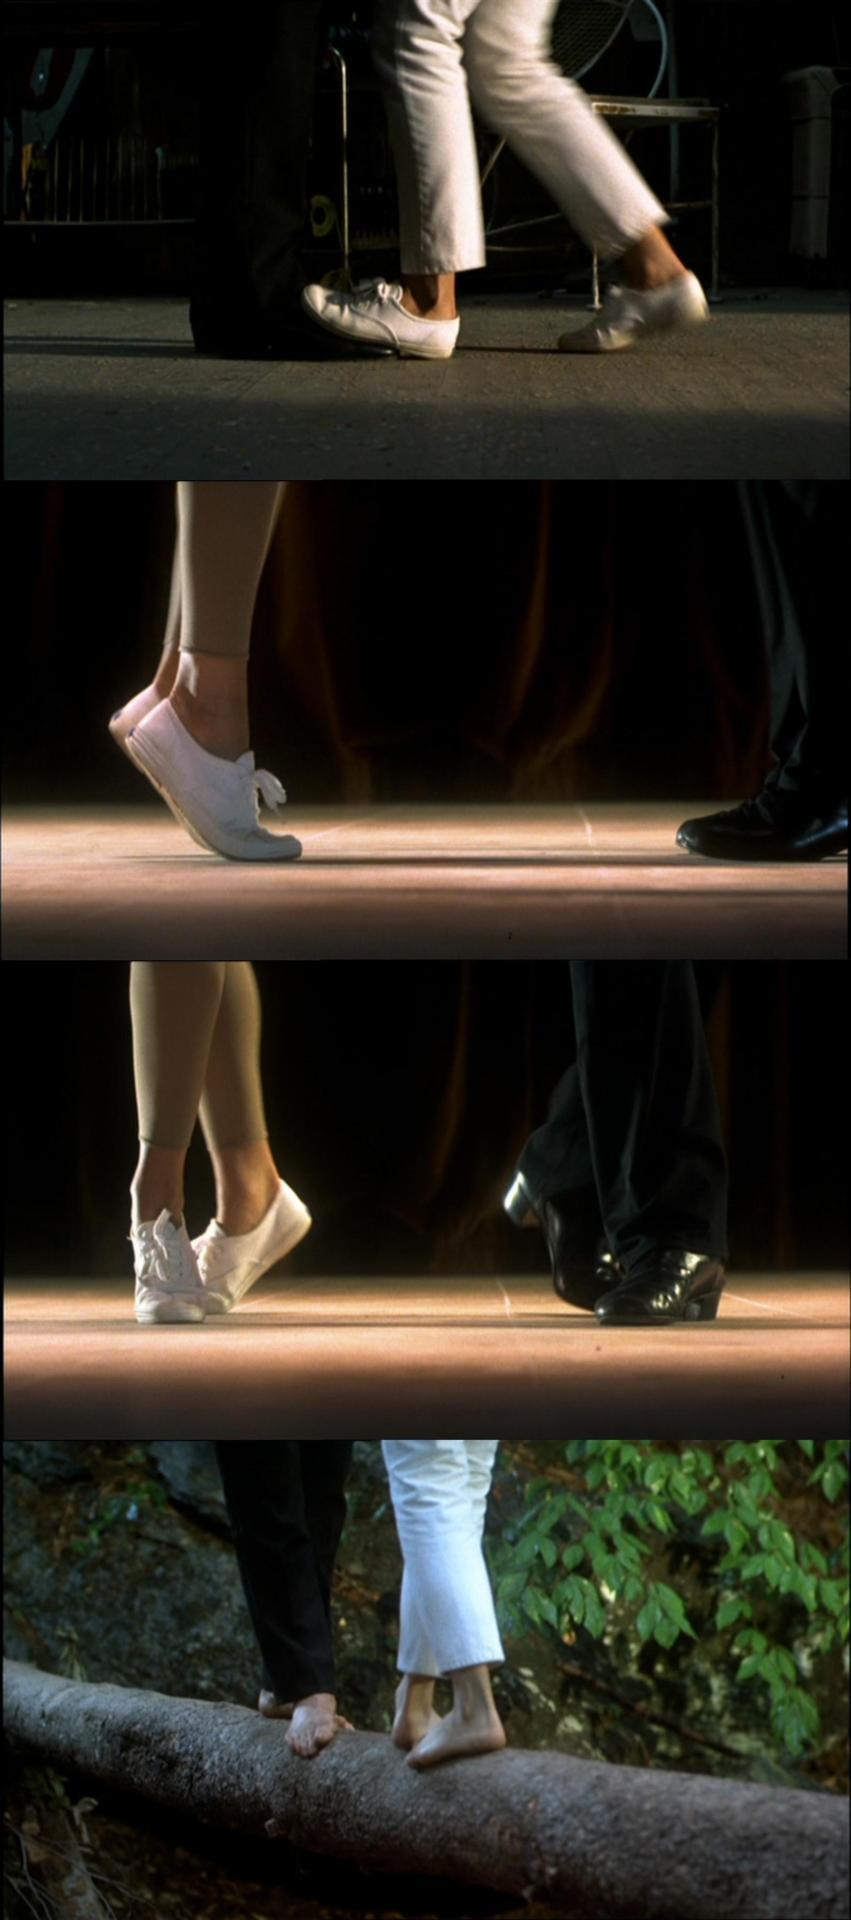 moviesinframes:  Dirty Dancing, 1987 (dir. Emile Ardolino)By Batchiara